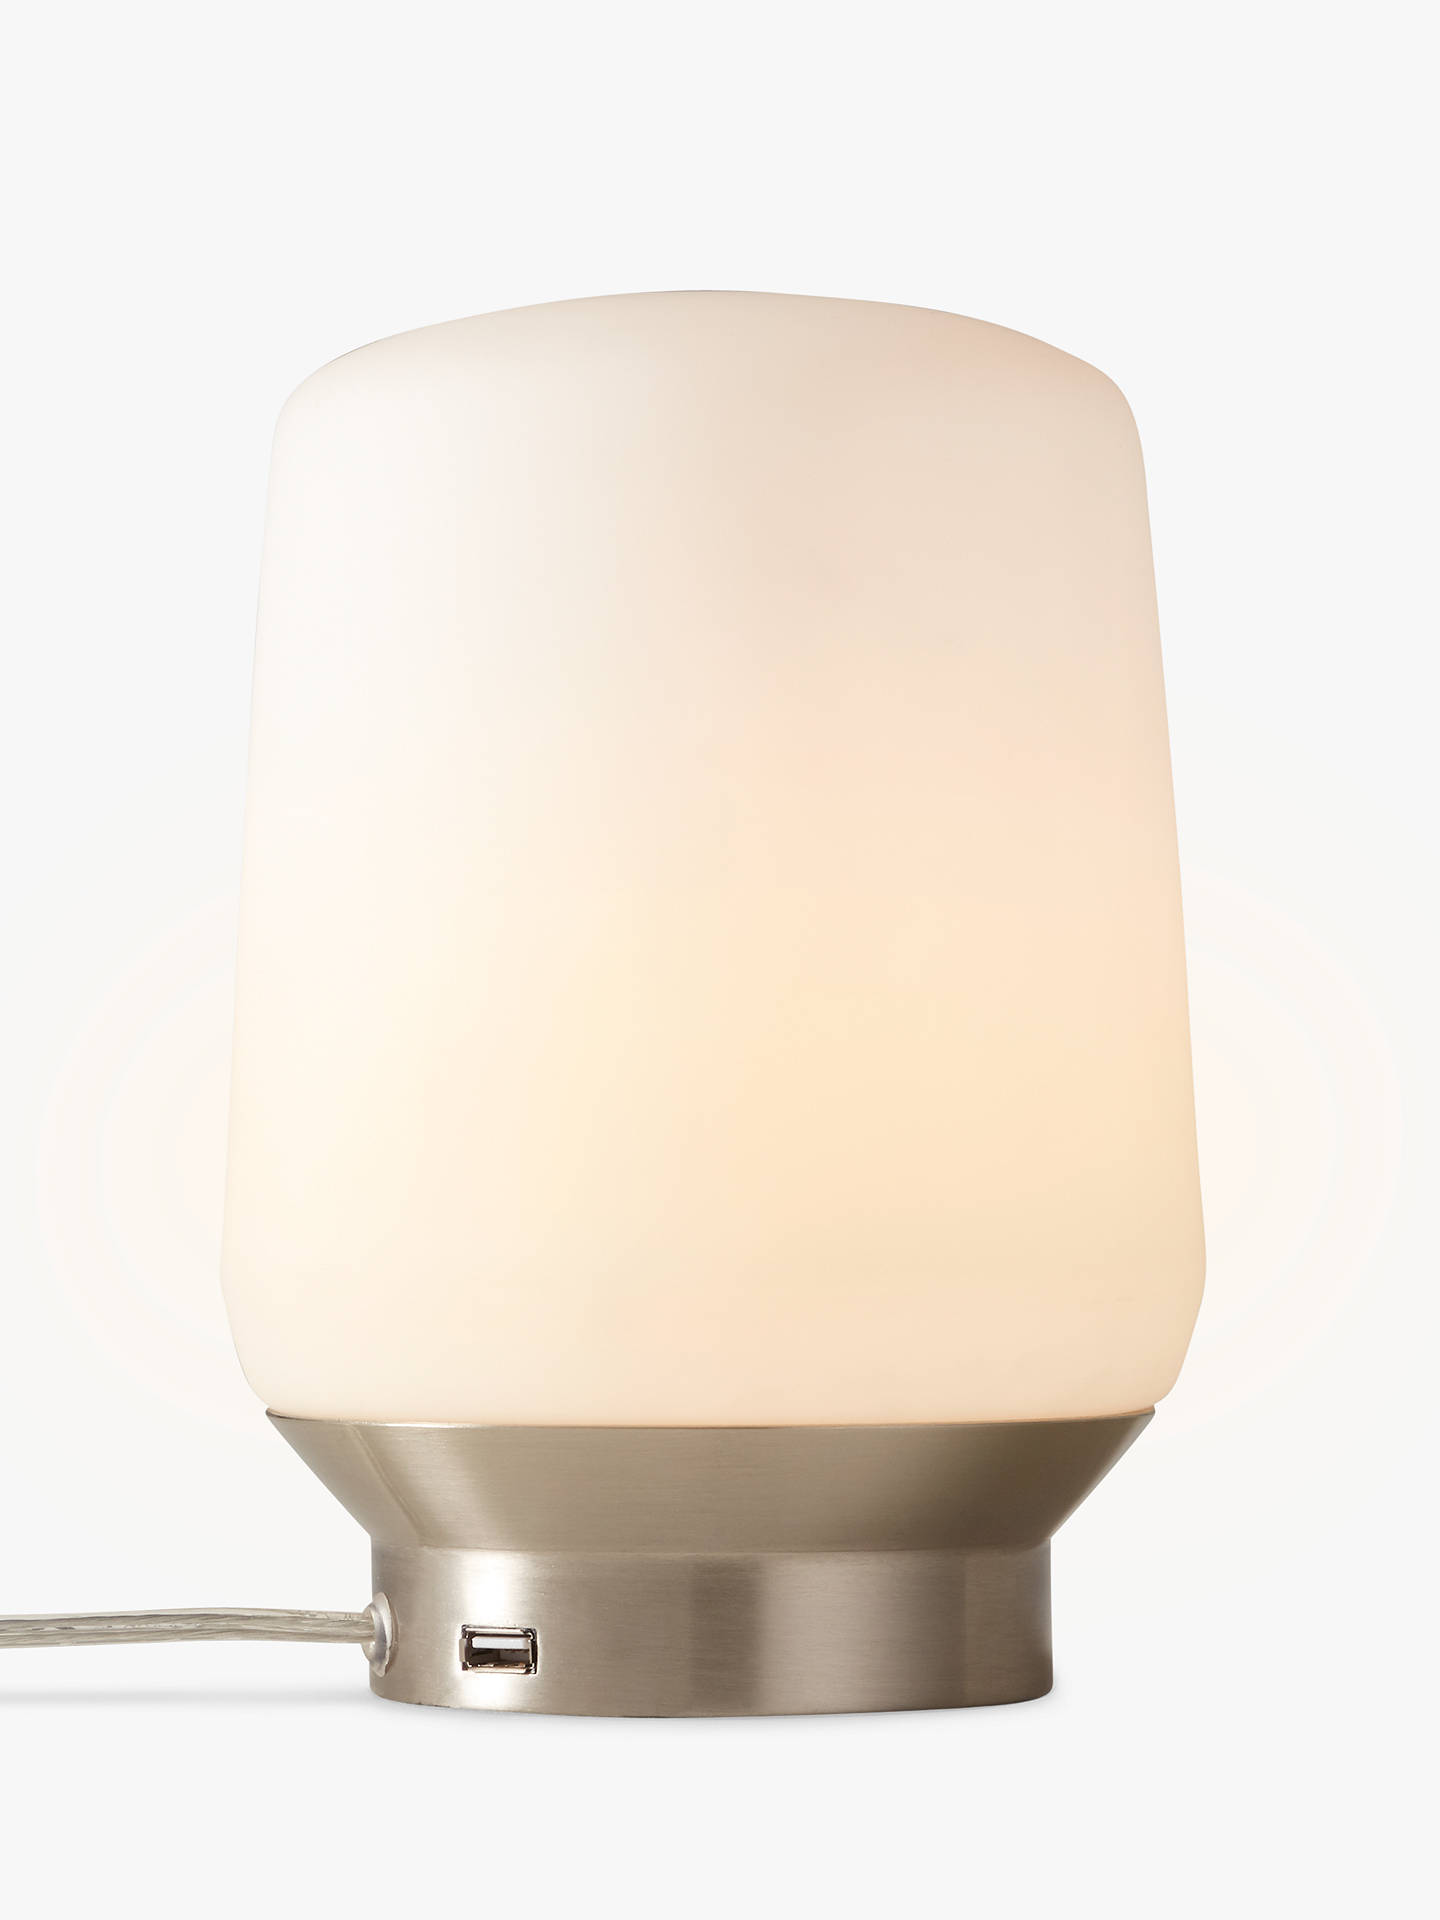 BuyJohn Lewis & Partners Stanza USB Charging Touch Lamp, Satin Nickel Online at johnlewis.com